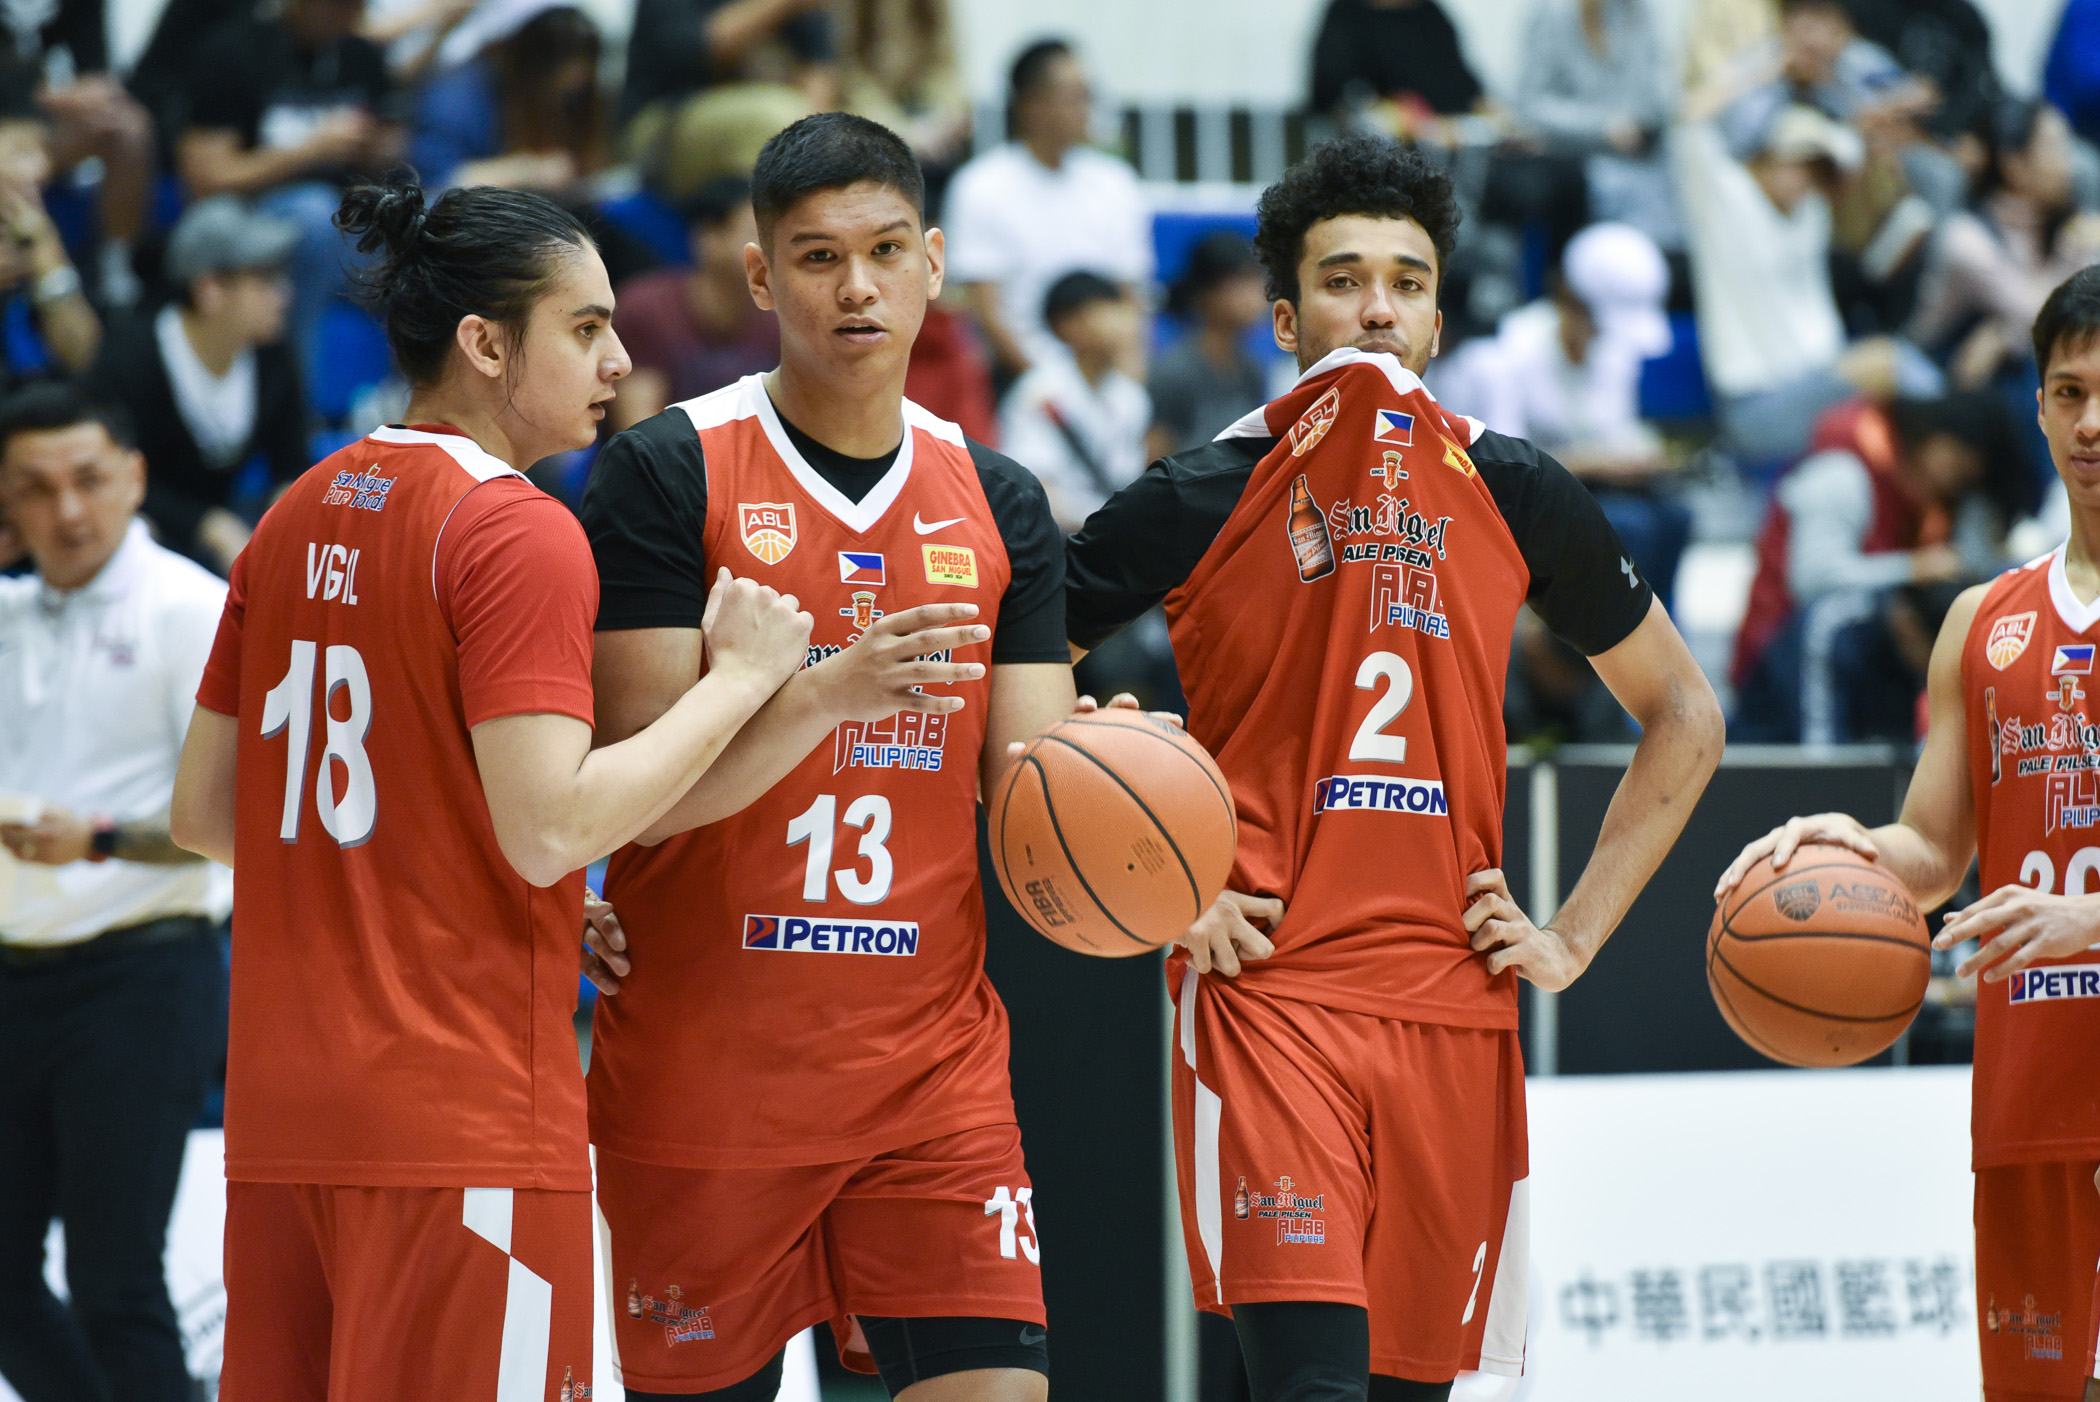 Alab Pilipinas suffers blowout loss at home to the Mono